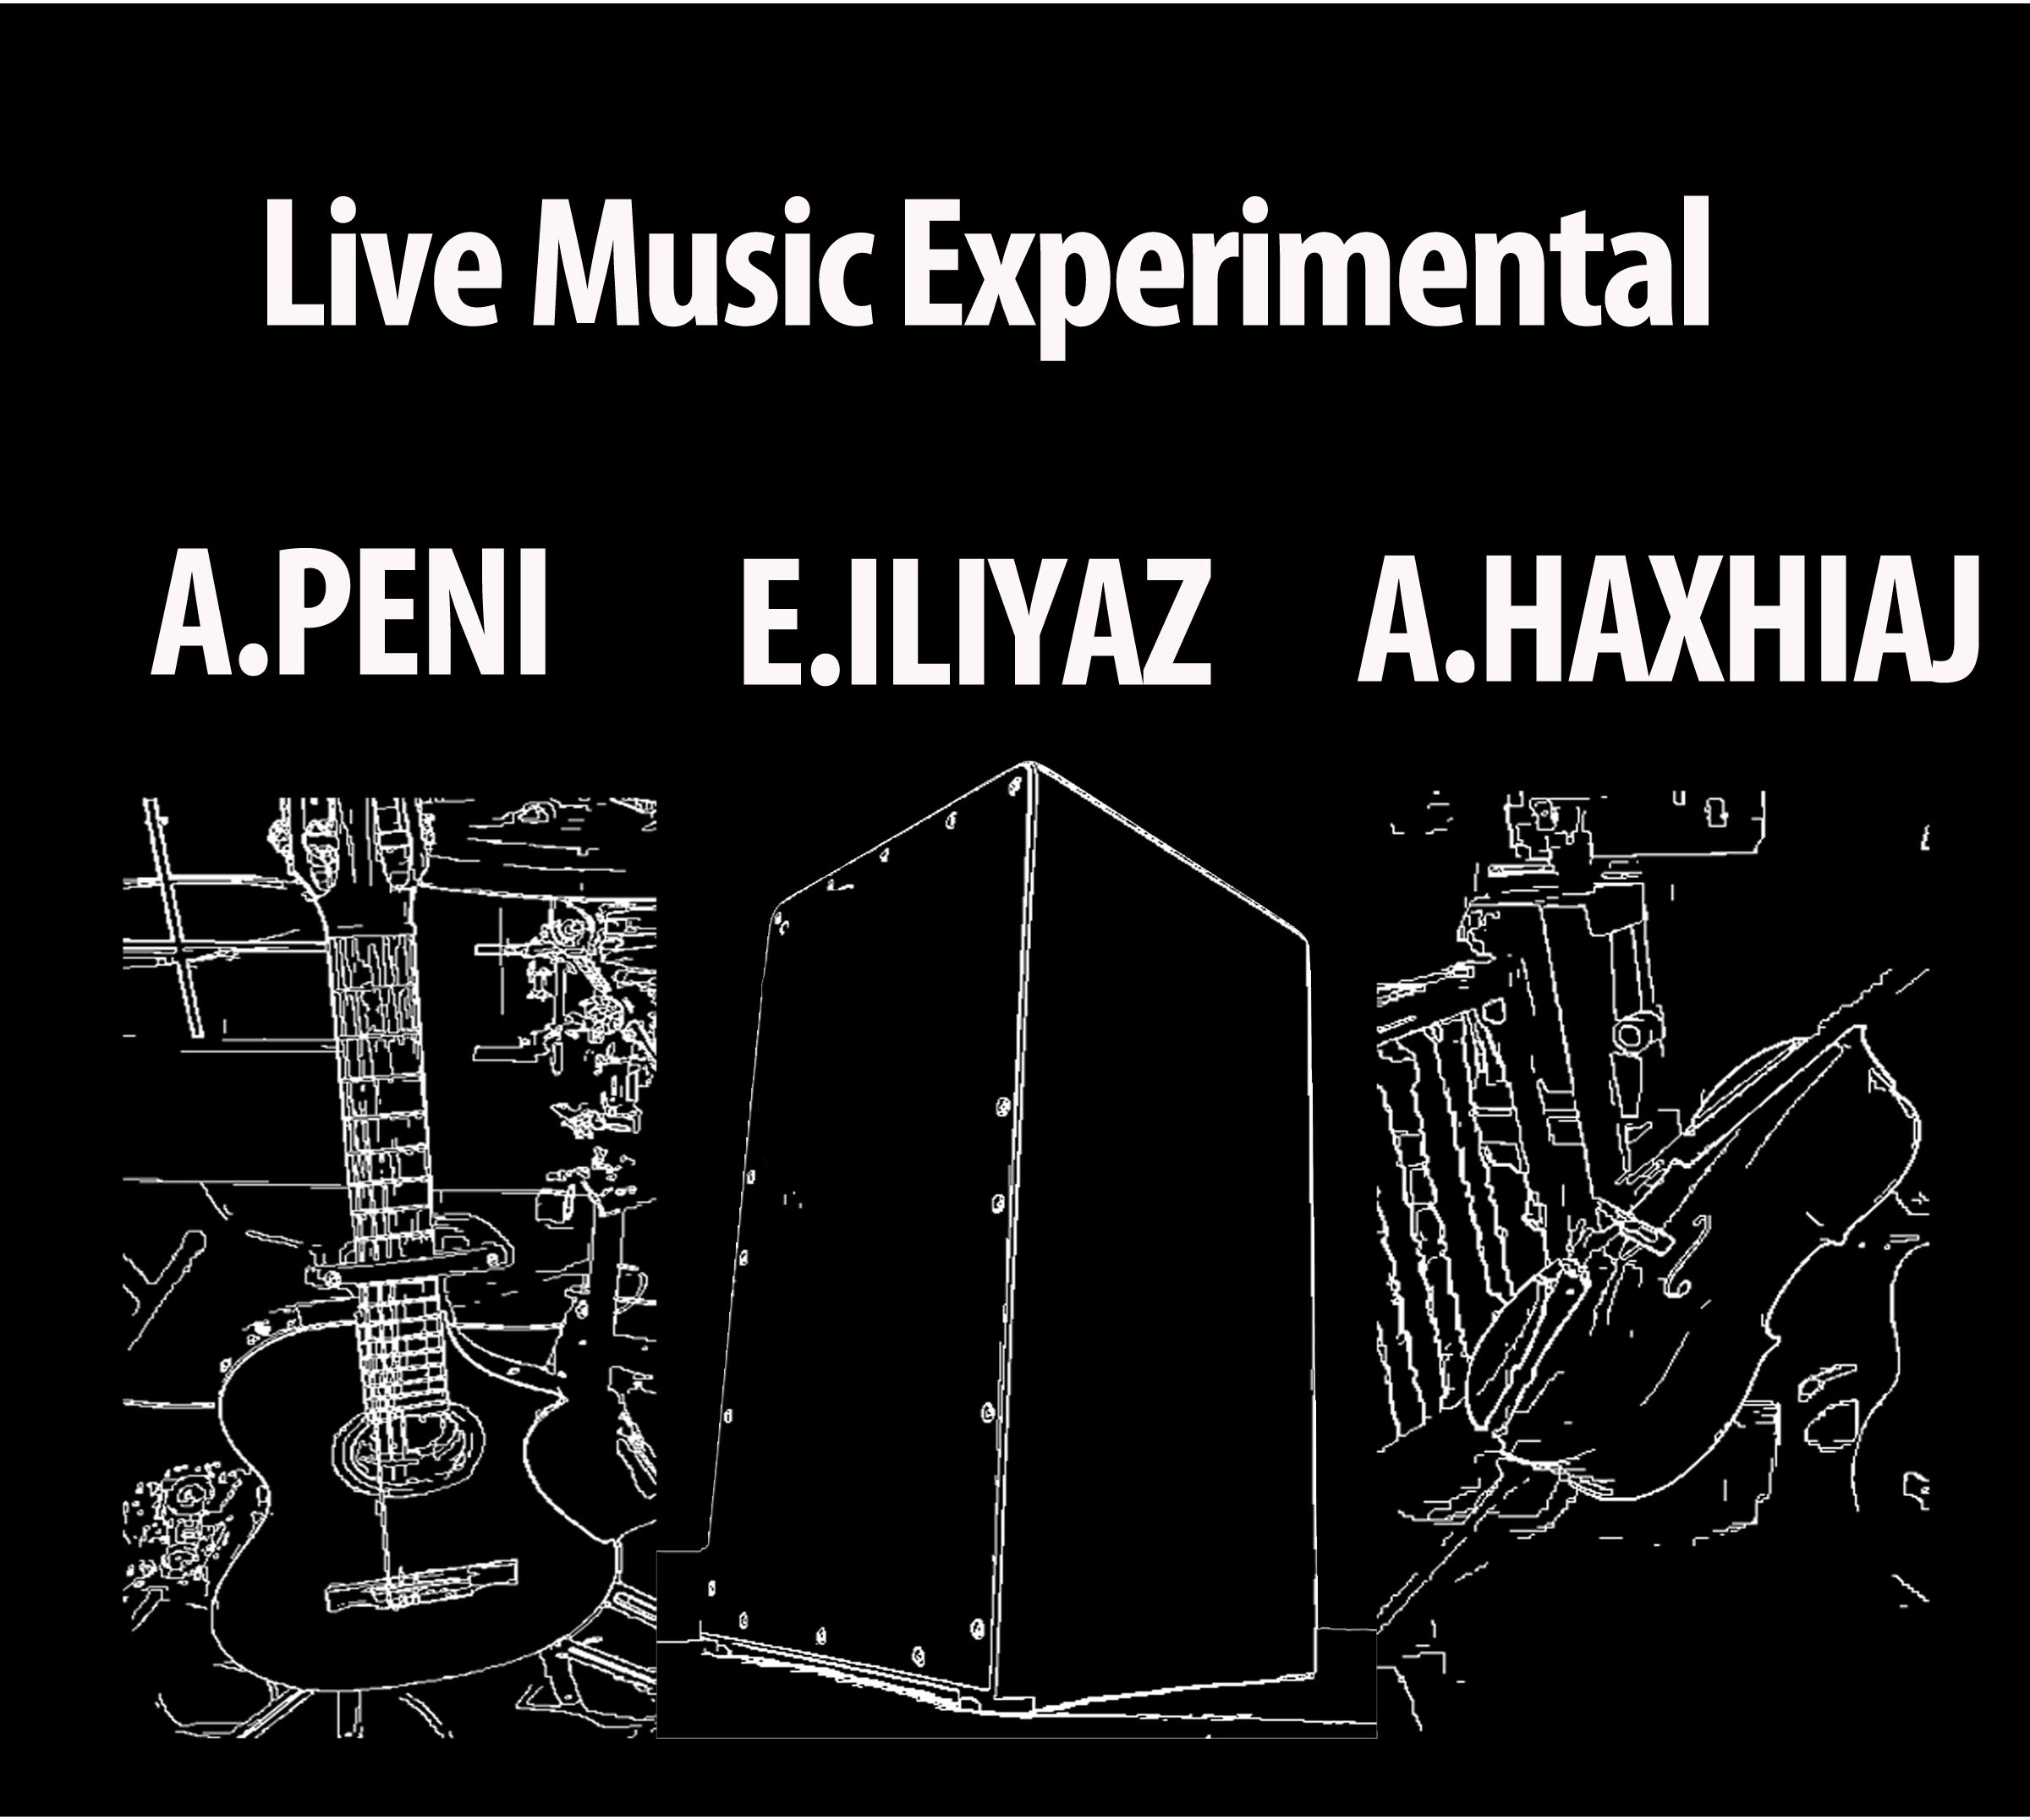 Live Music Experimental at rron rest